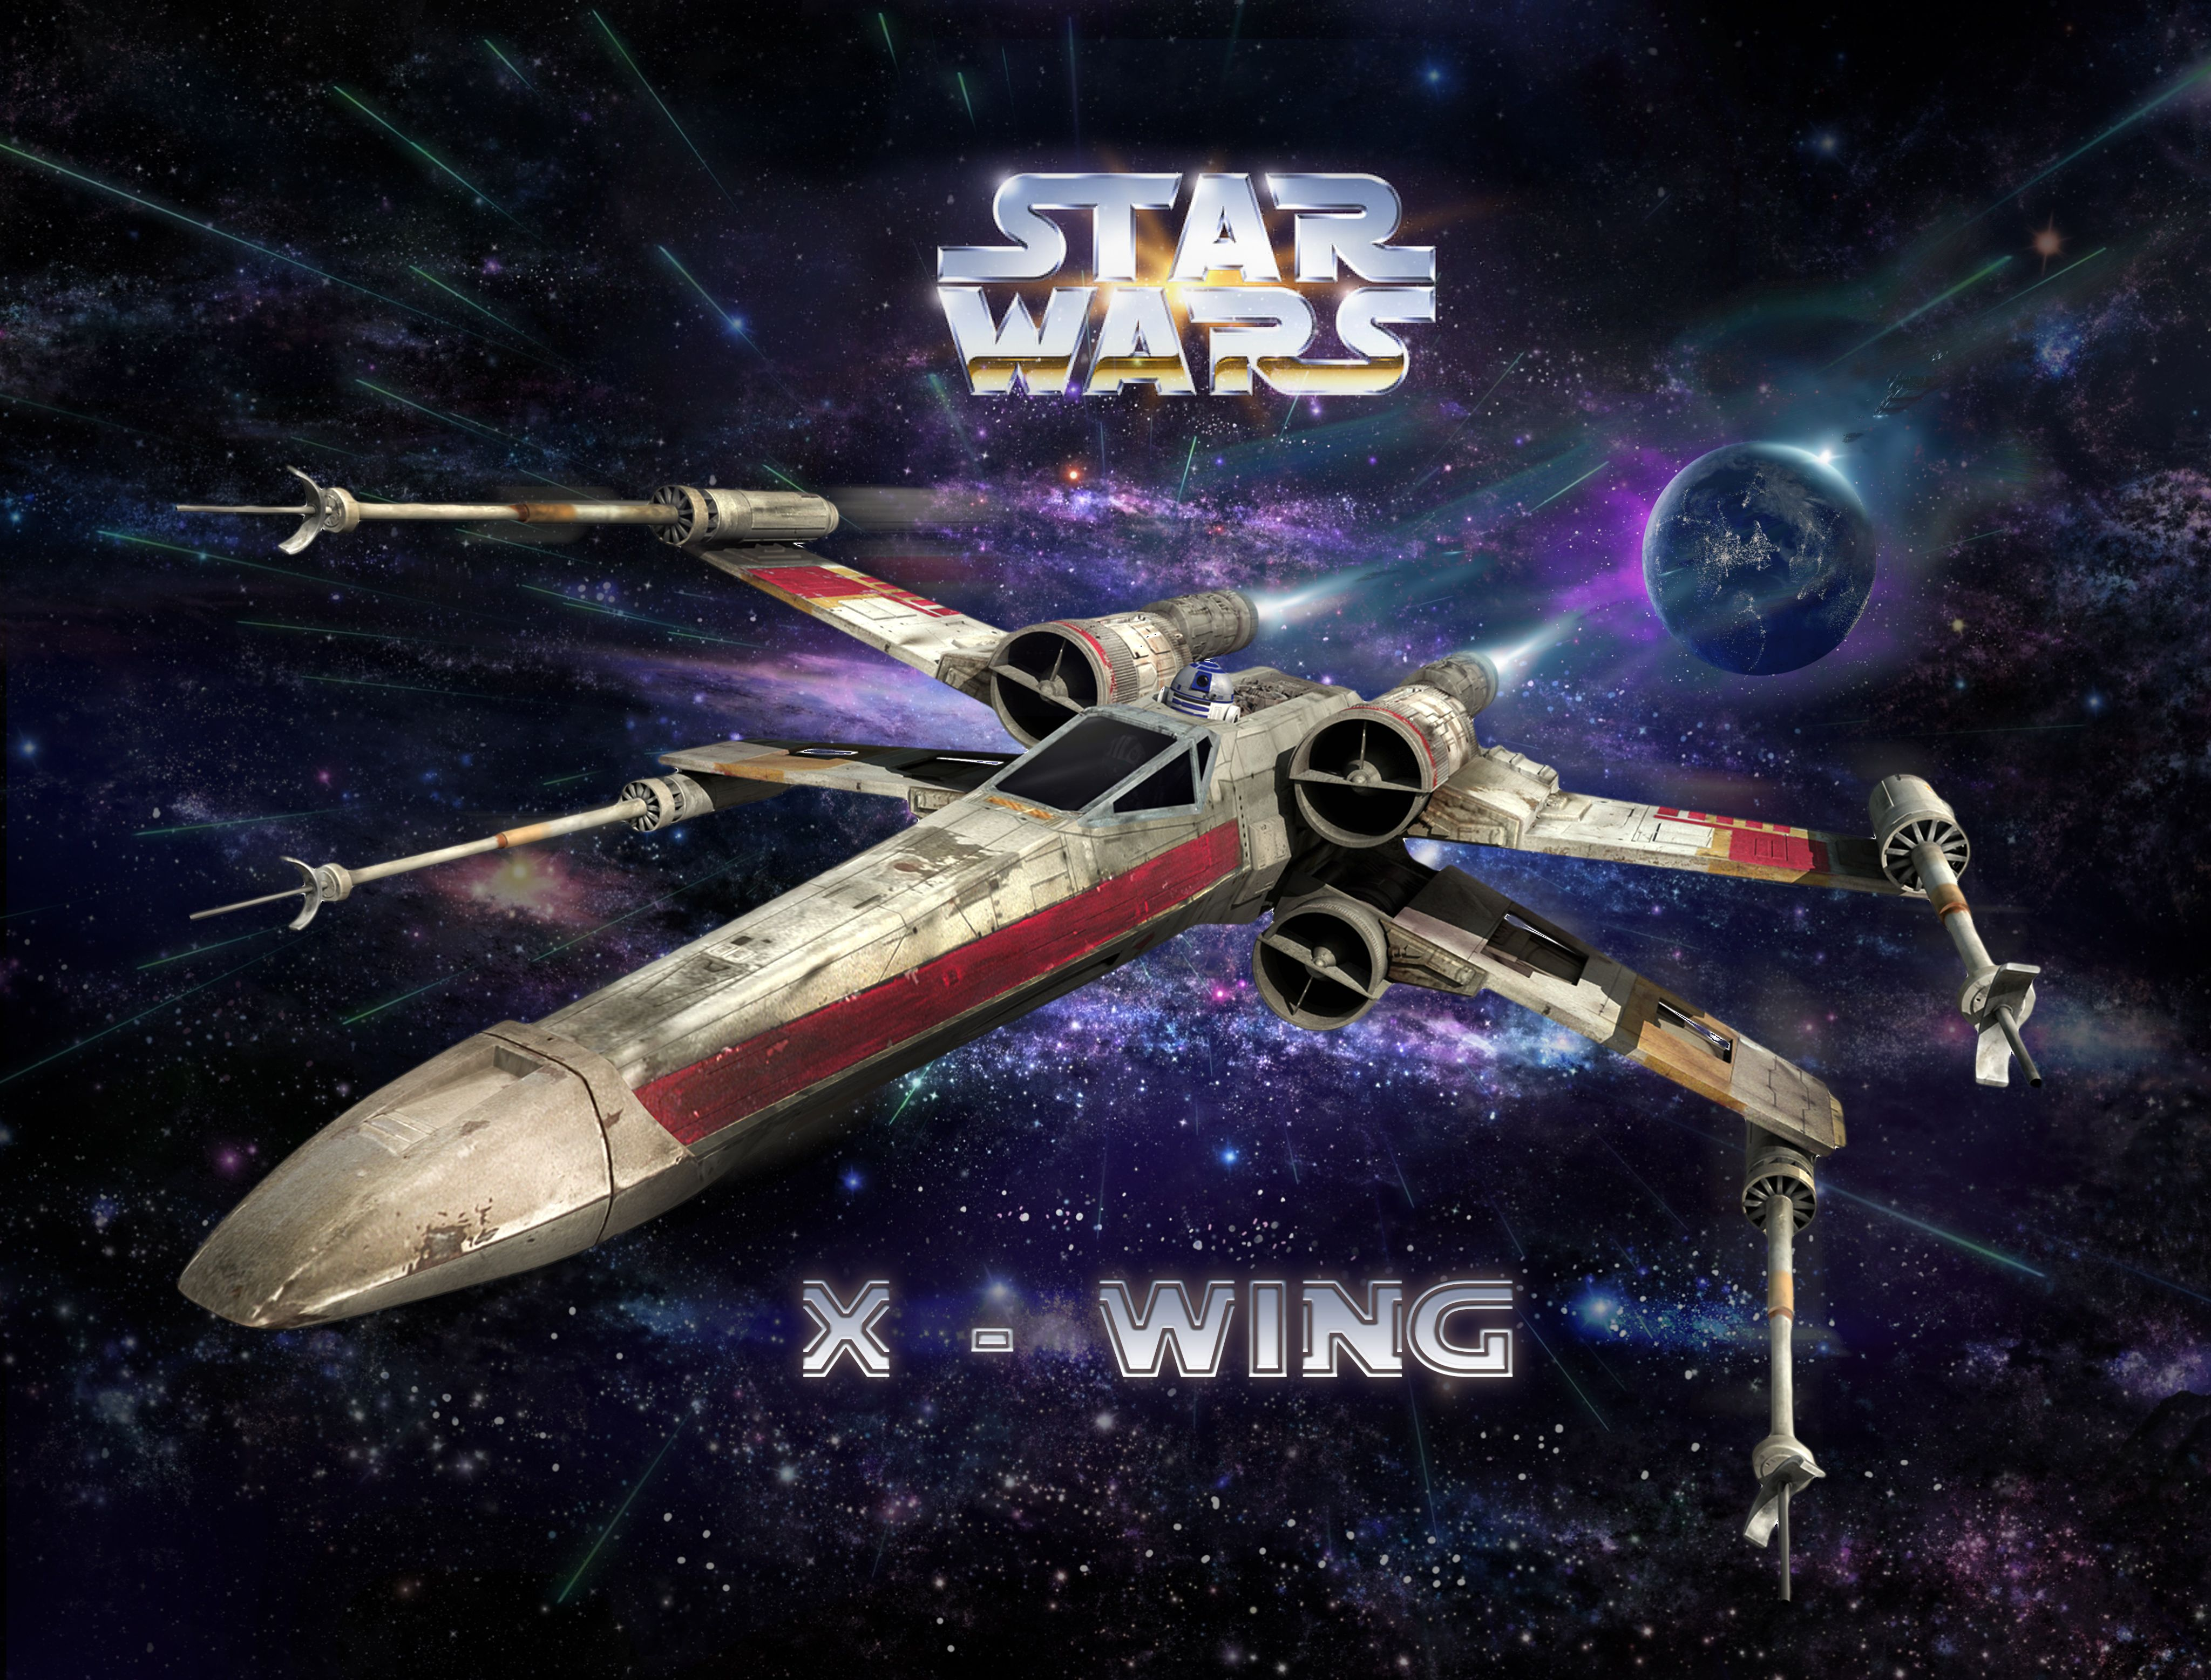 Star Wars X Wing 4K Wallpapers